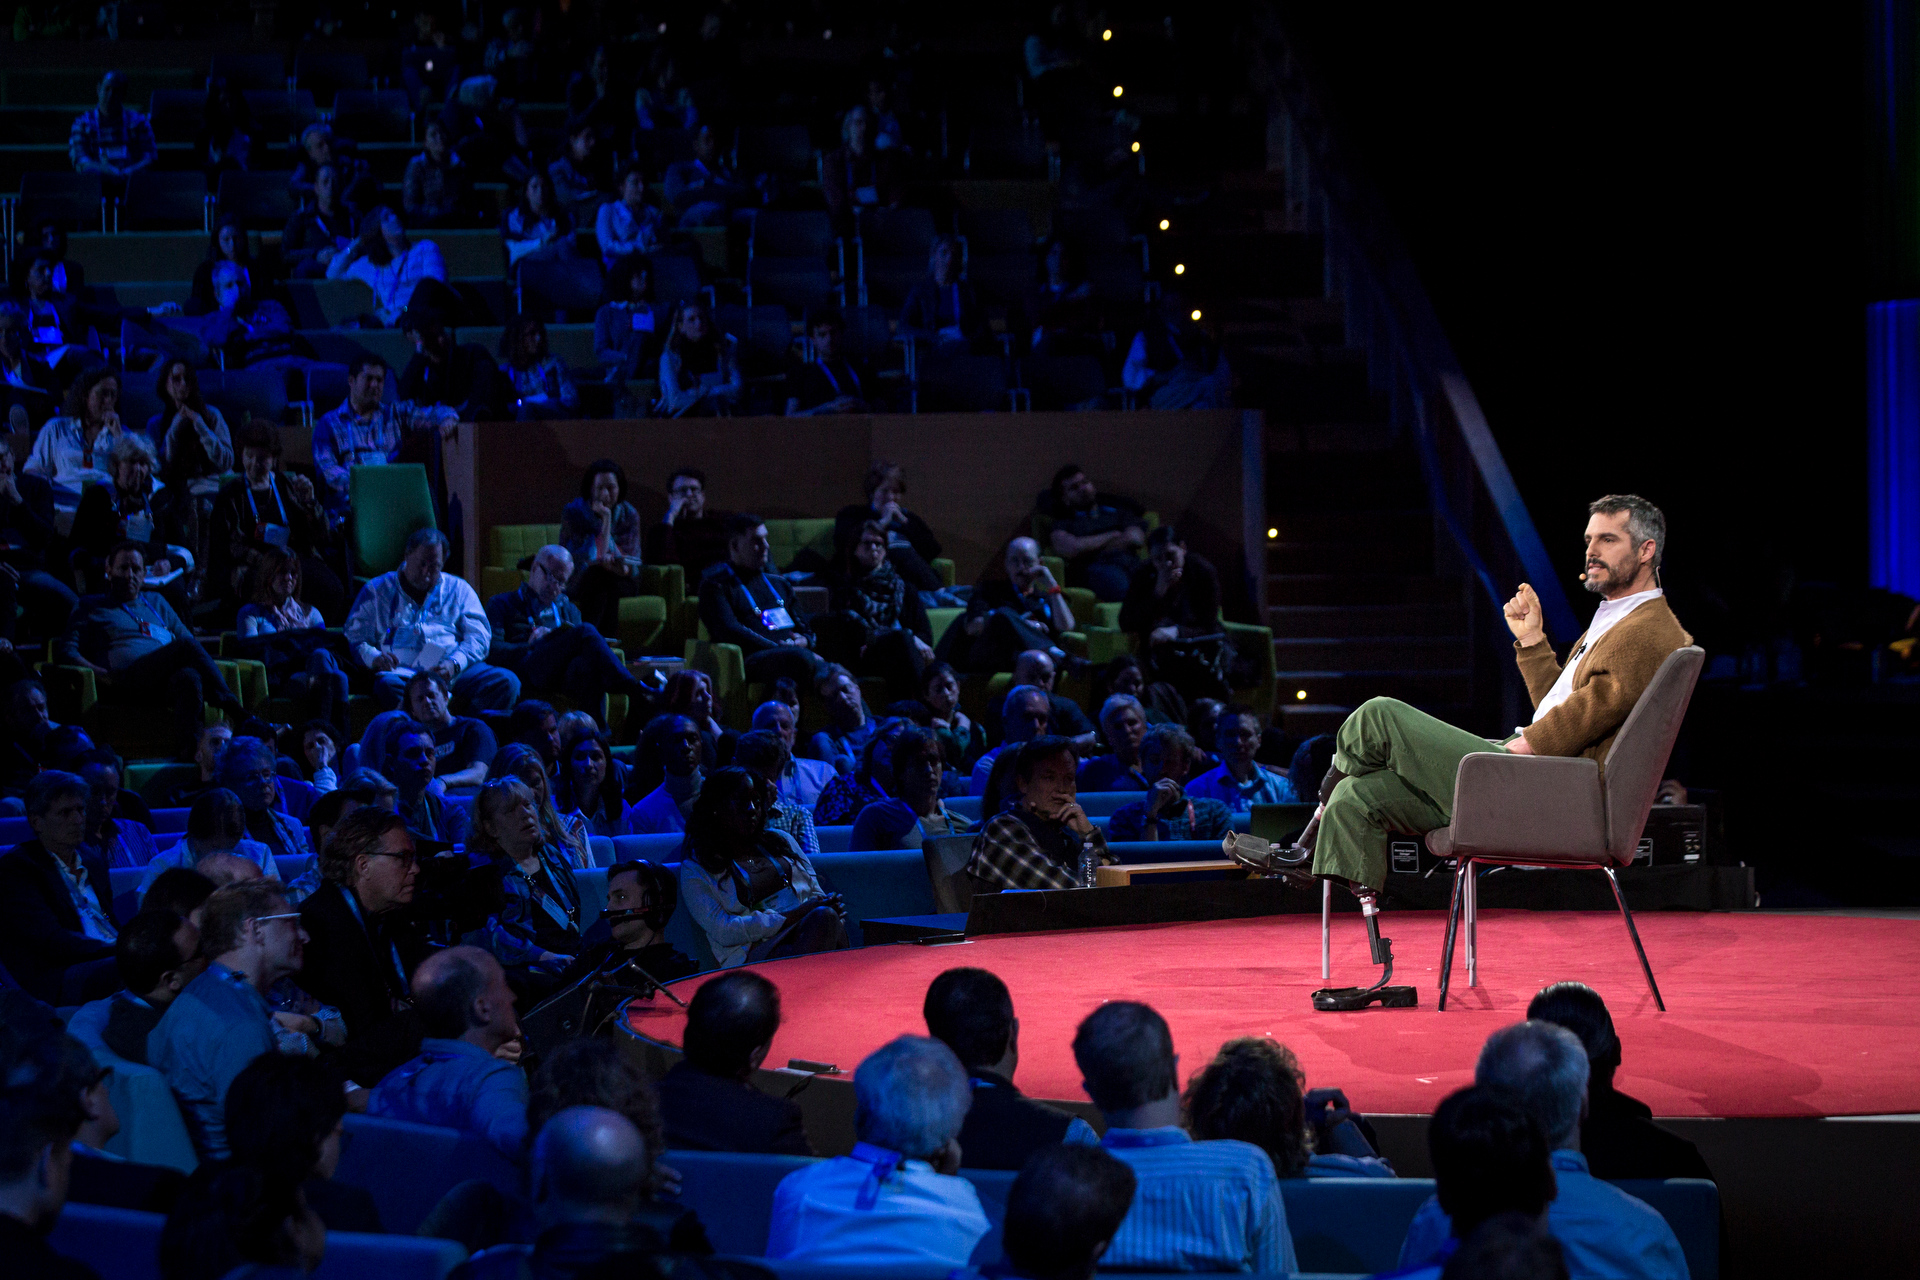 BJ Miller speaks at TED2015 - Truth and Dare, Session 12. Photo: Bret Hartman/TED